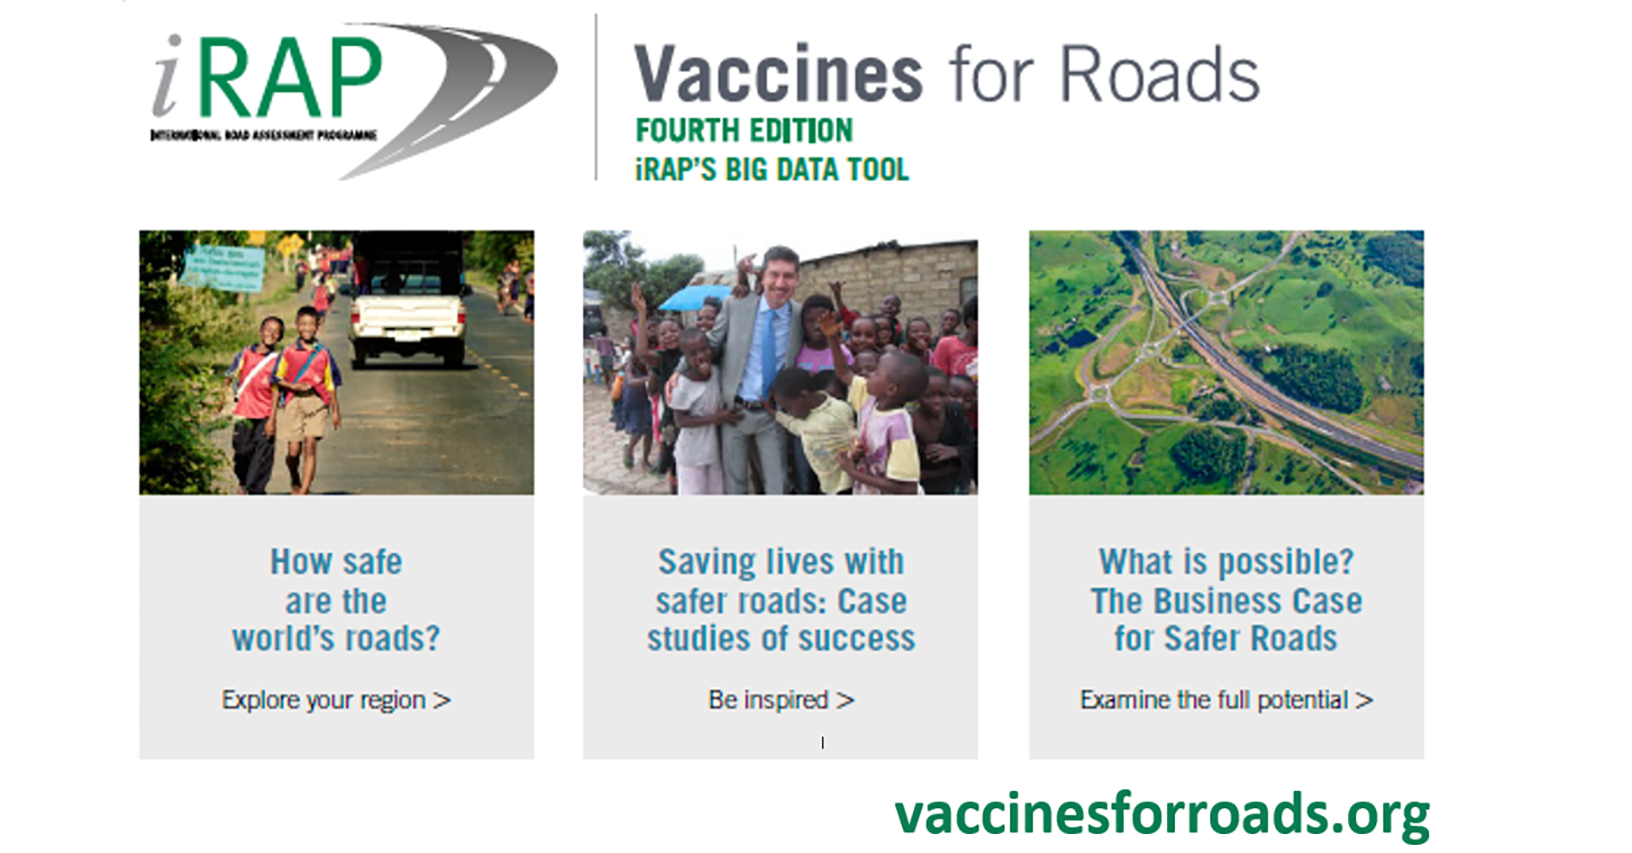 New Vaccines for Roads Big Data Tool Set to Save Lives